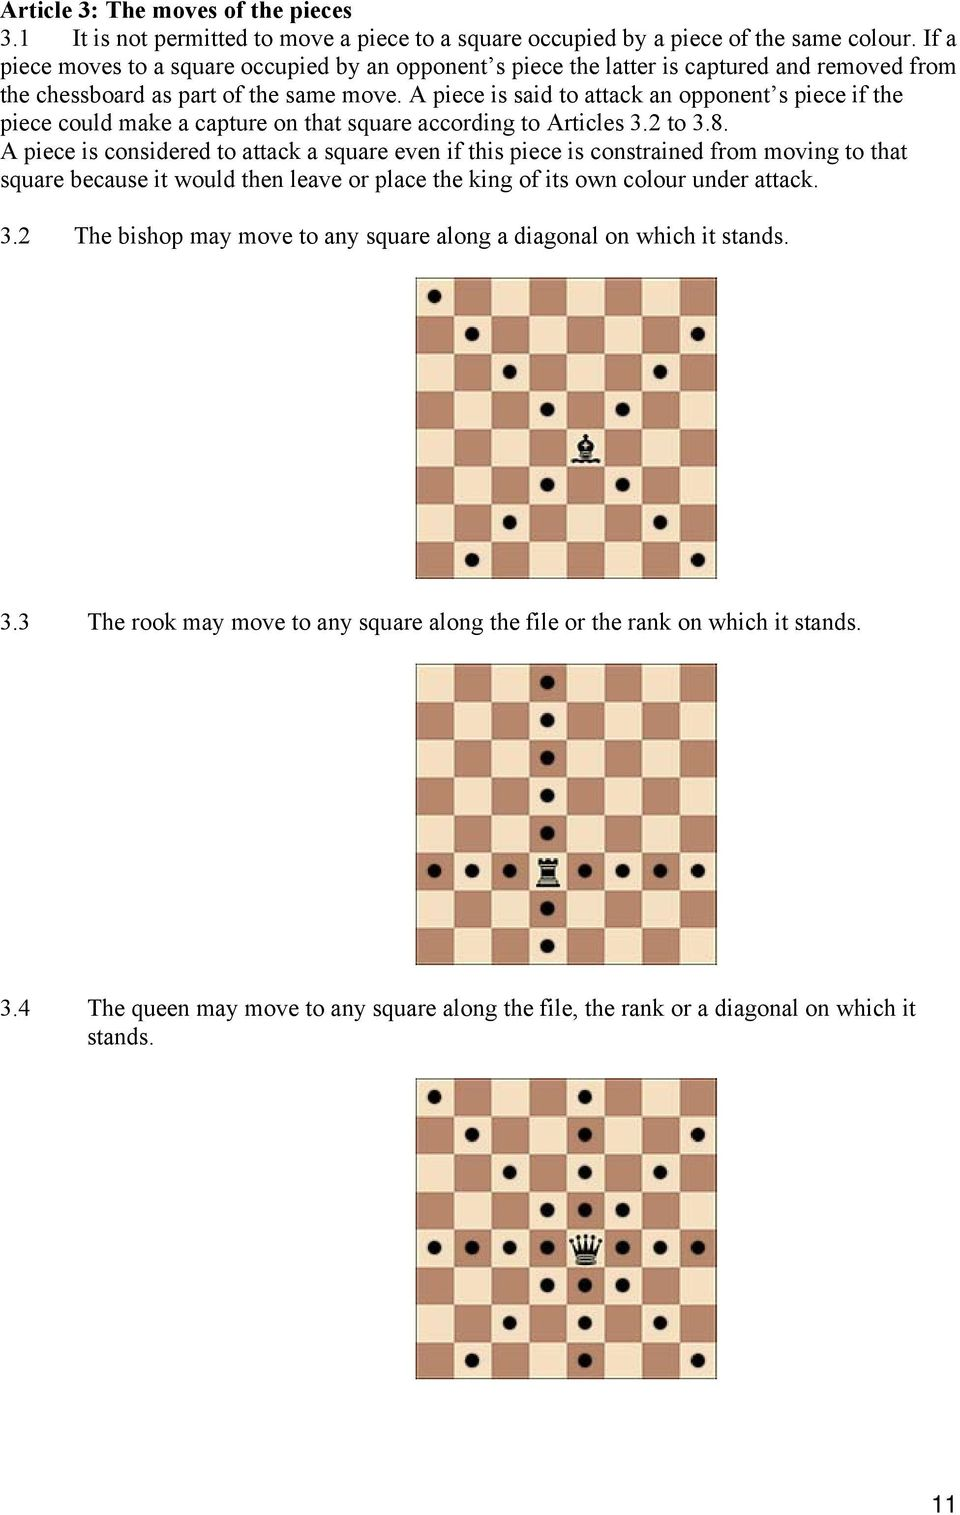 A piece is said to attack an opponent s piece if the piece could make a capture on that square according to Articles 3.2 to 3.8.